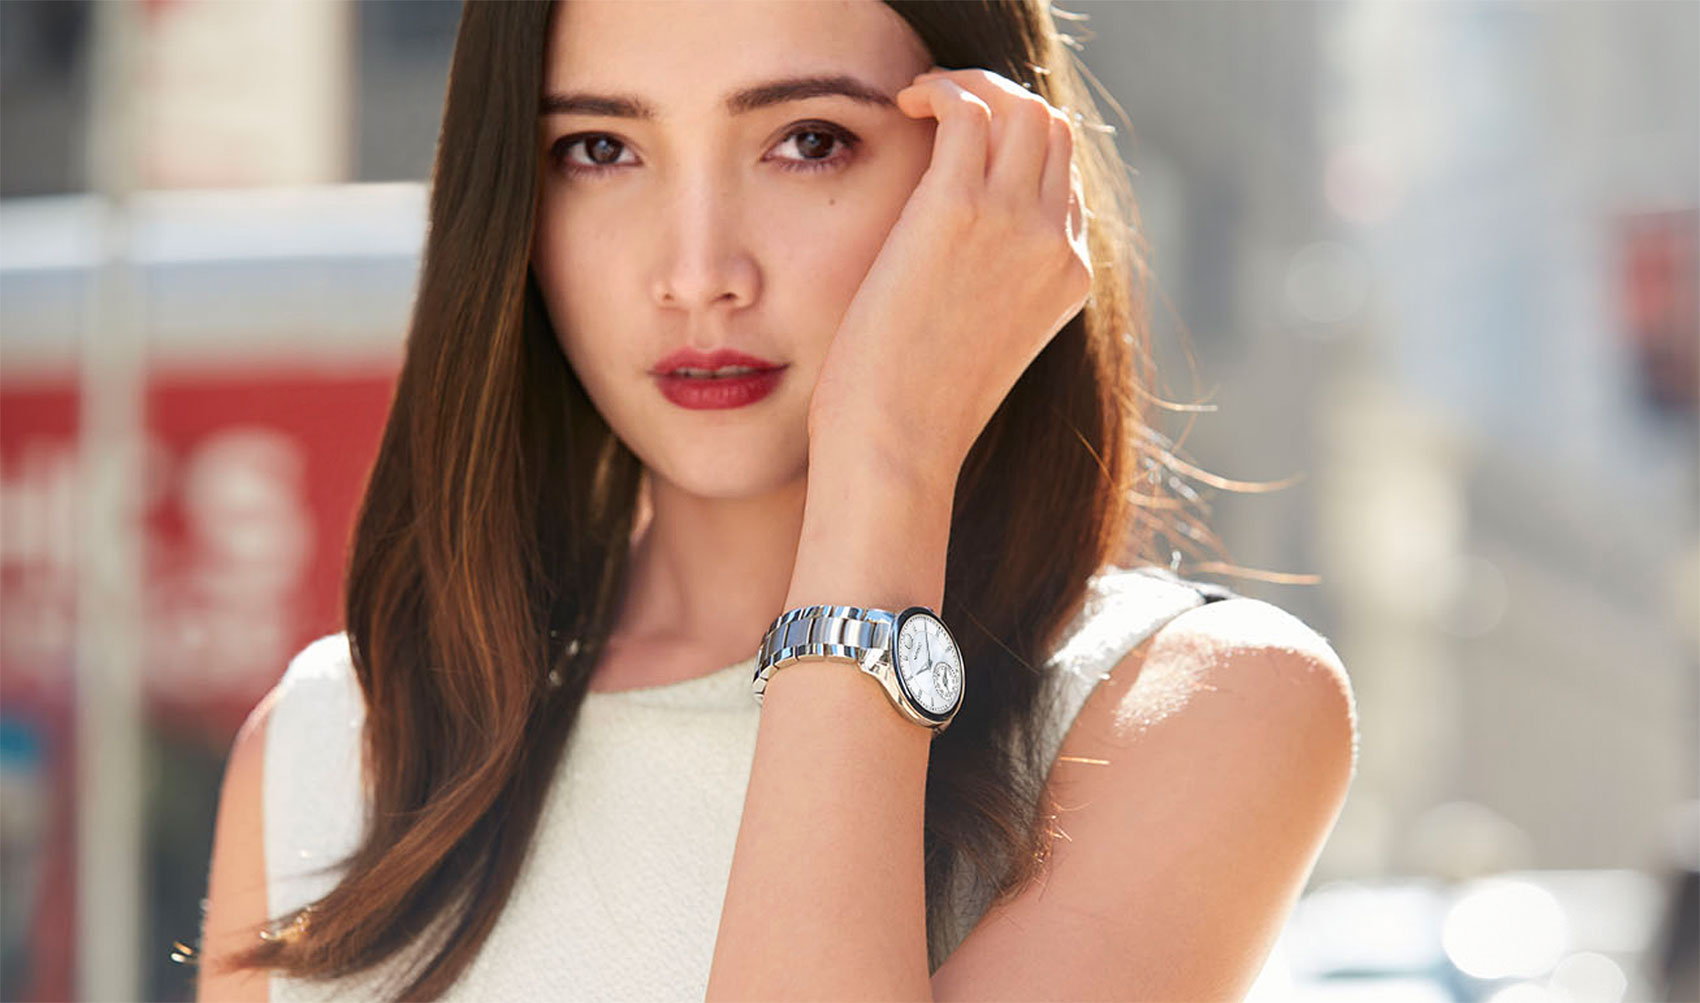 The Bellina Motion Watch - A Very Smart Move By Movado